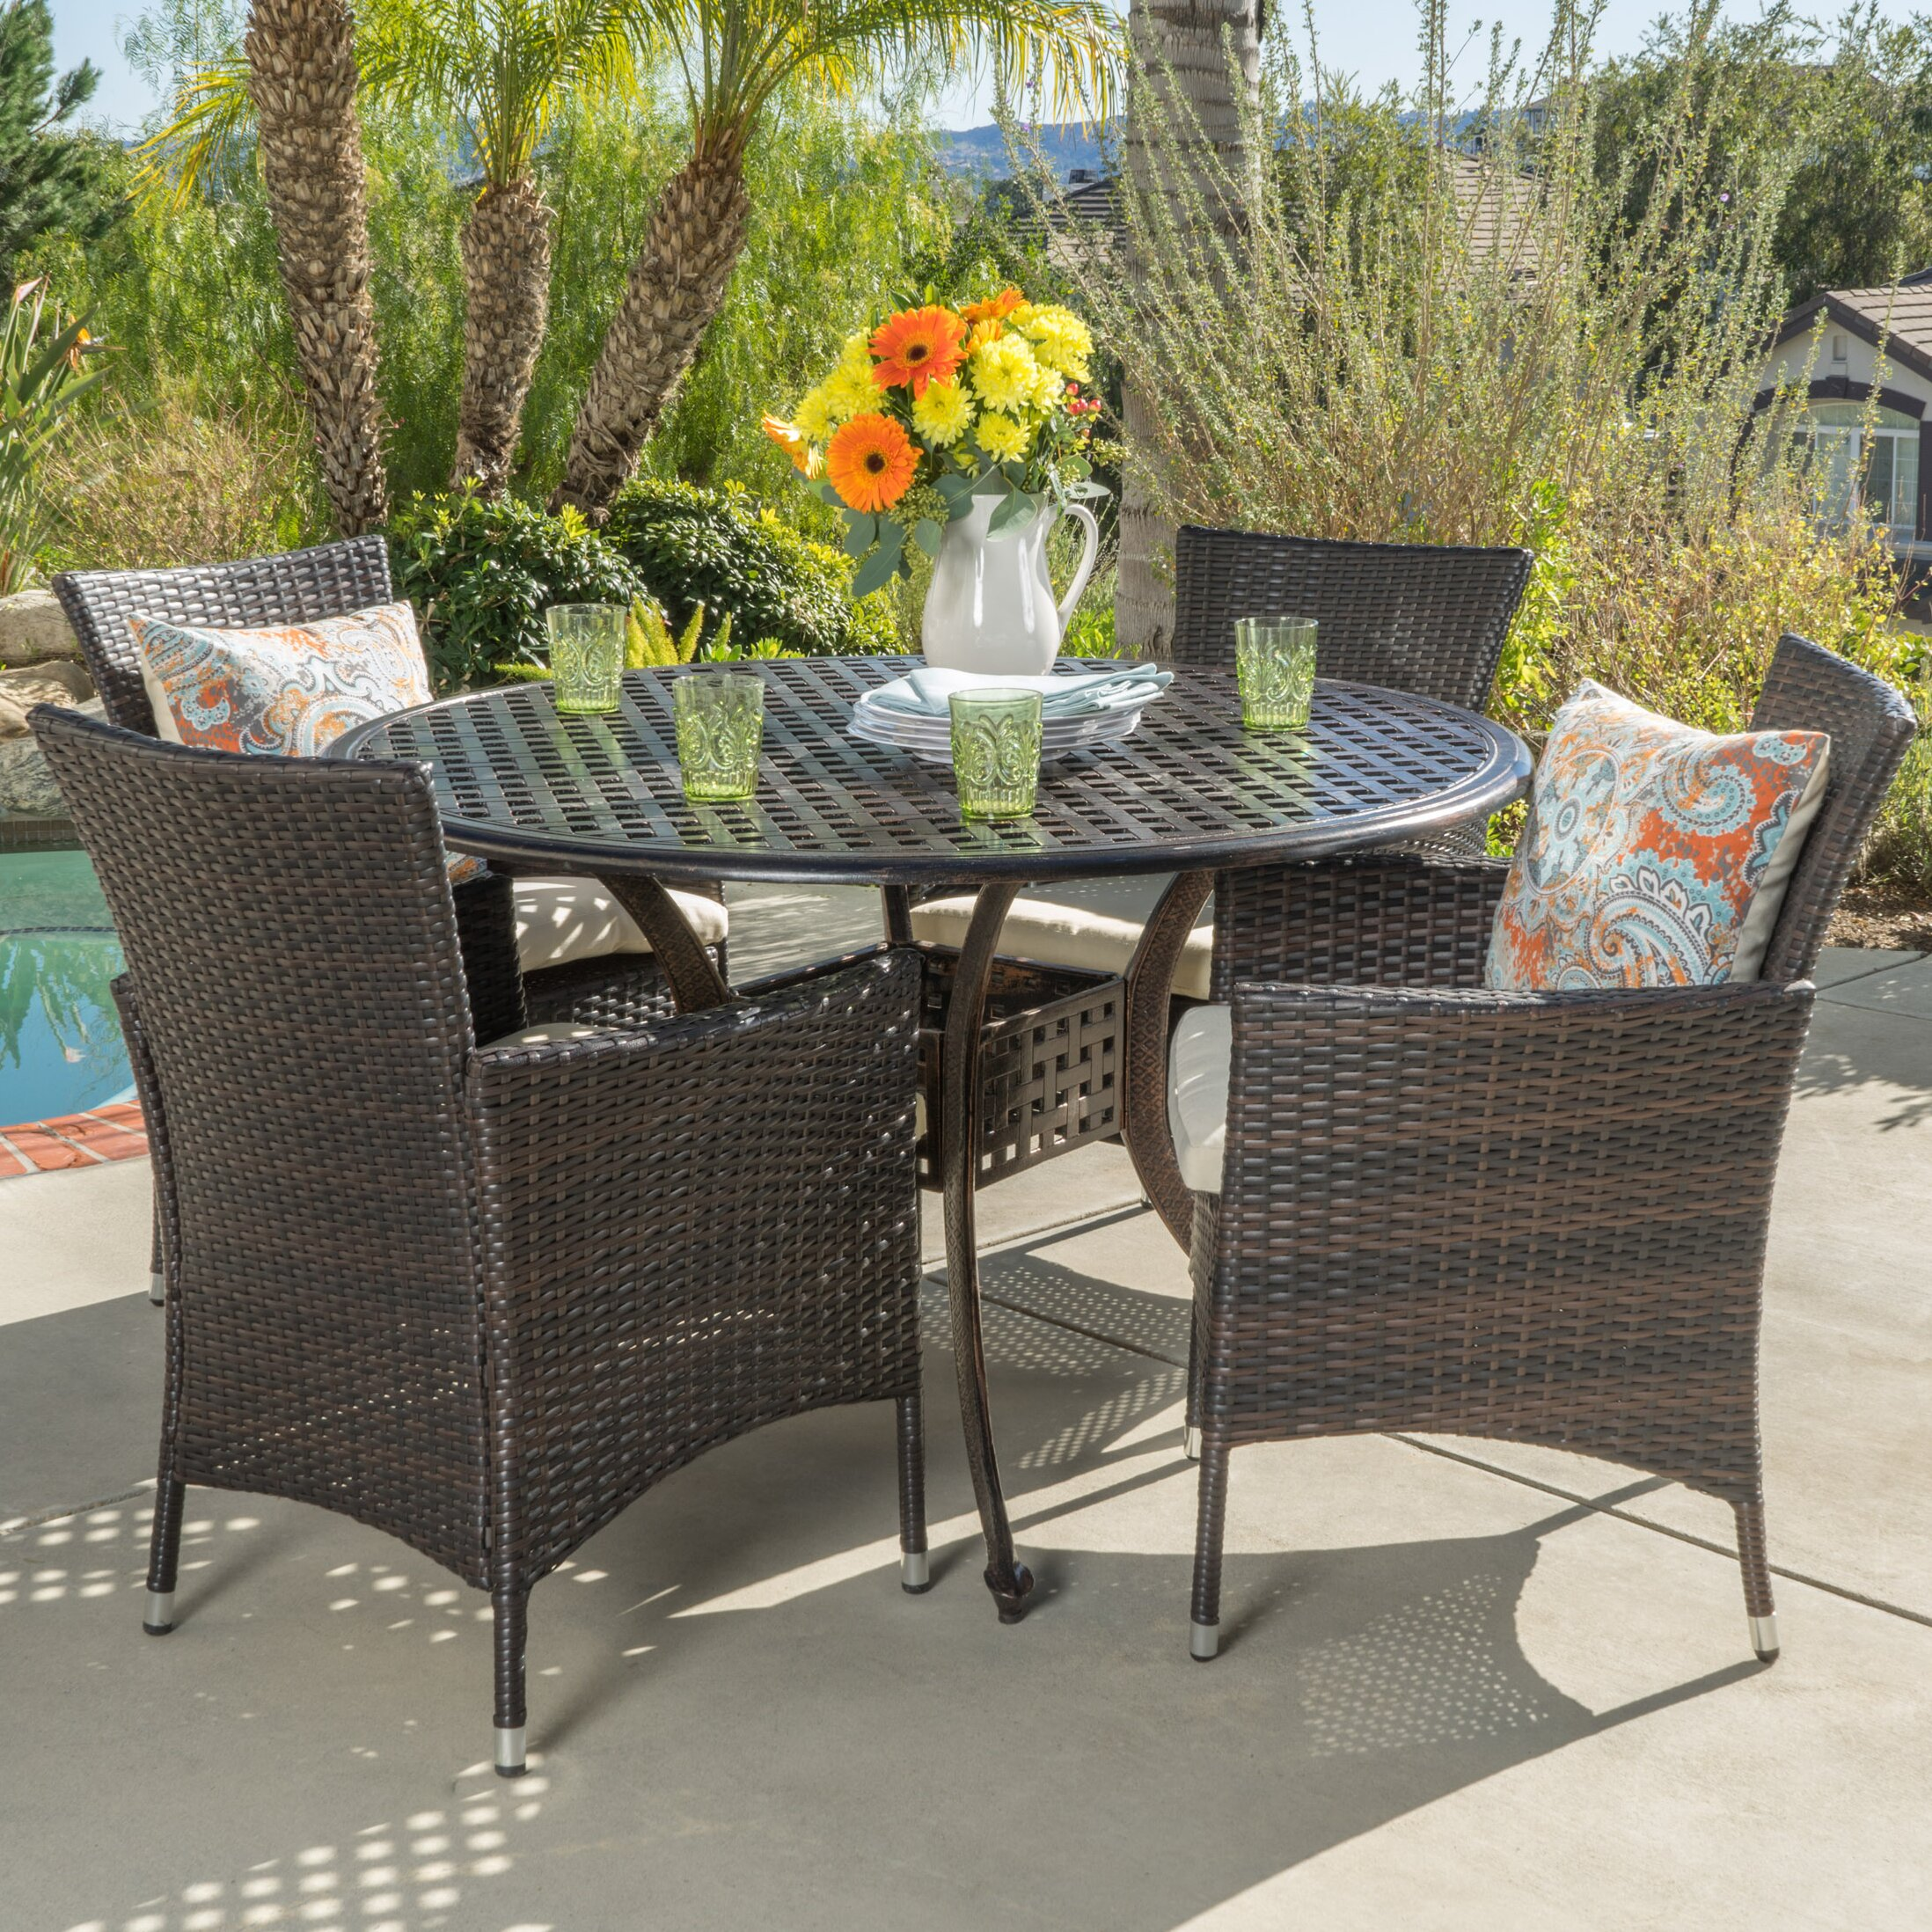 New Outdoor Dining Set